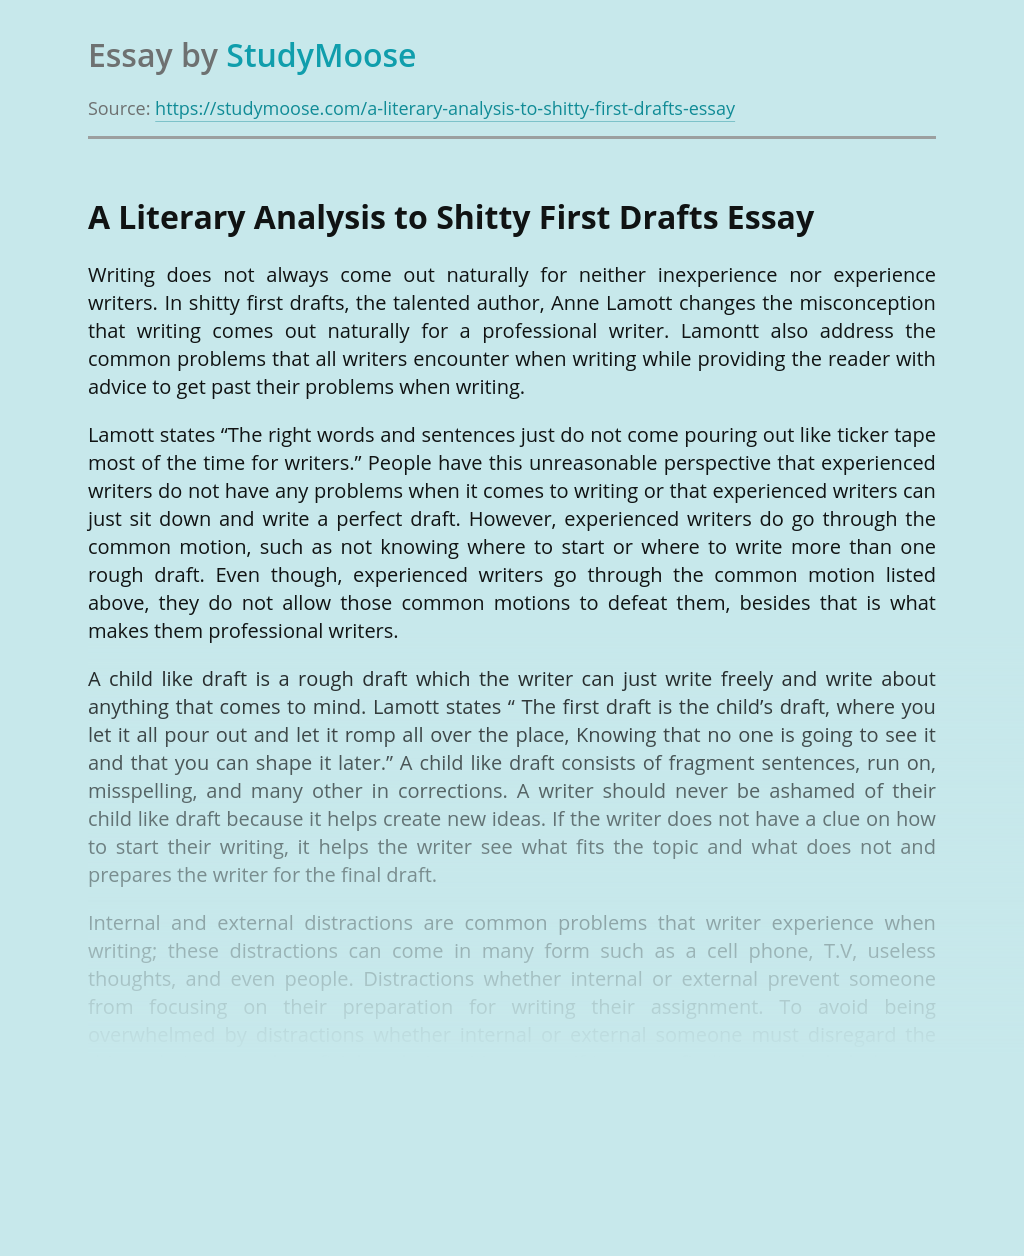 Analysis to Shitty First Drafts in Writing